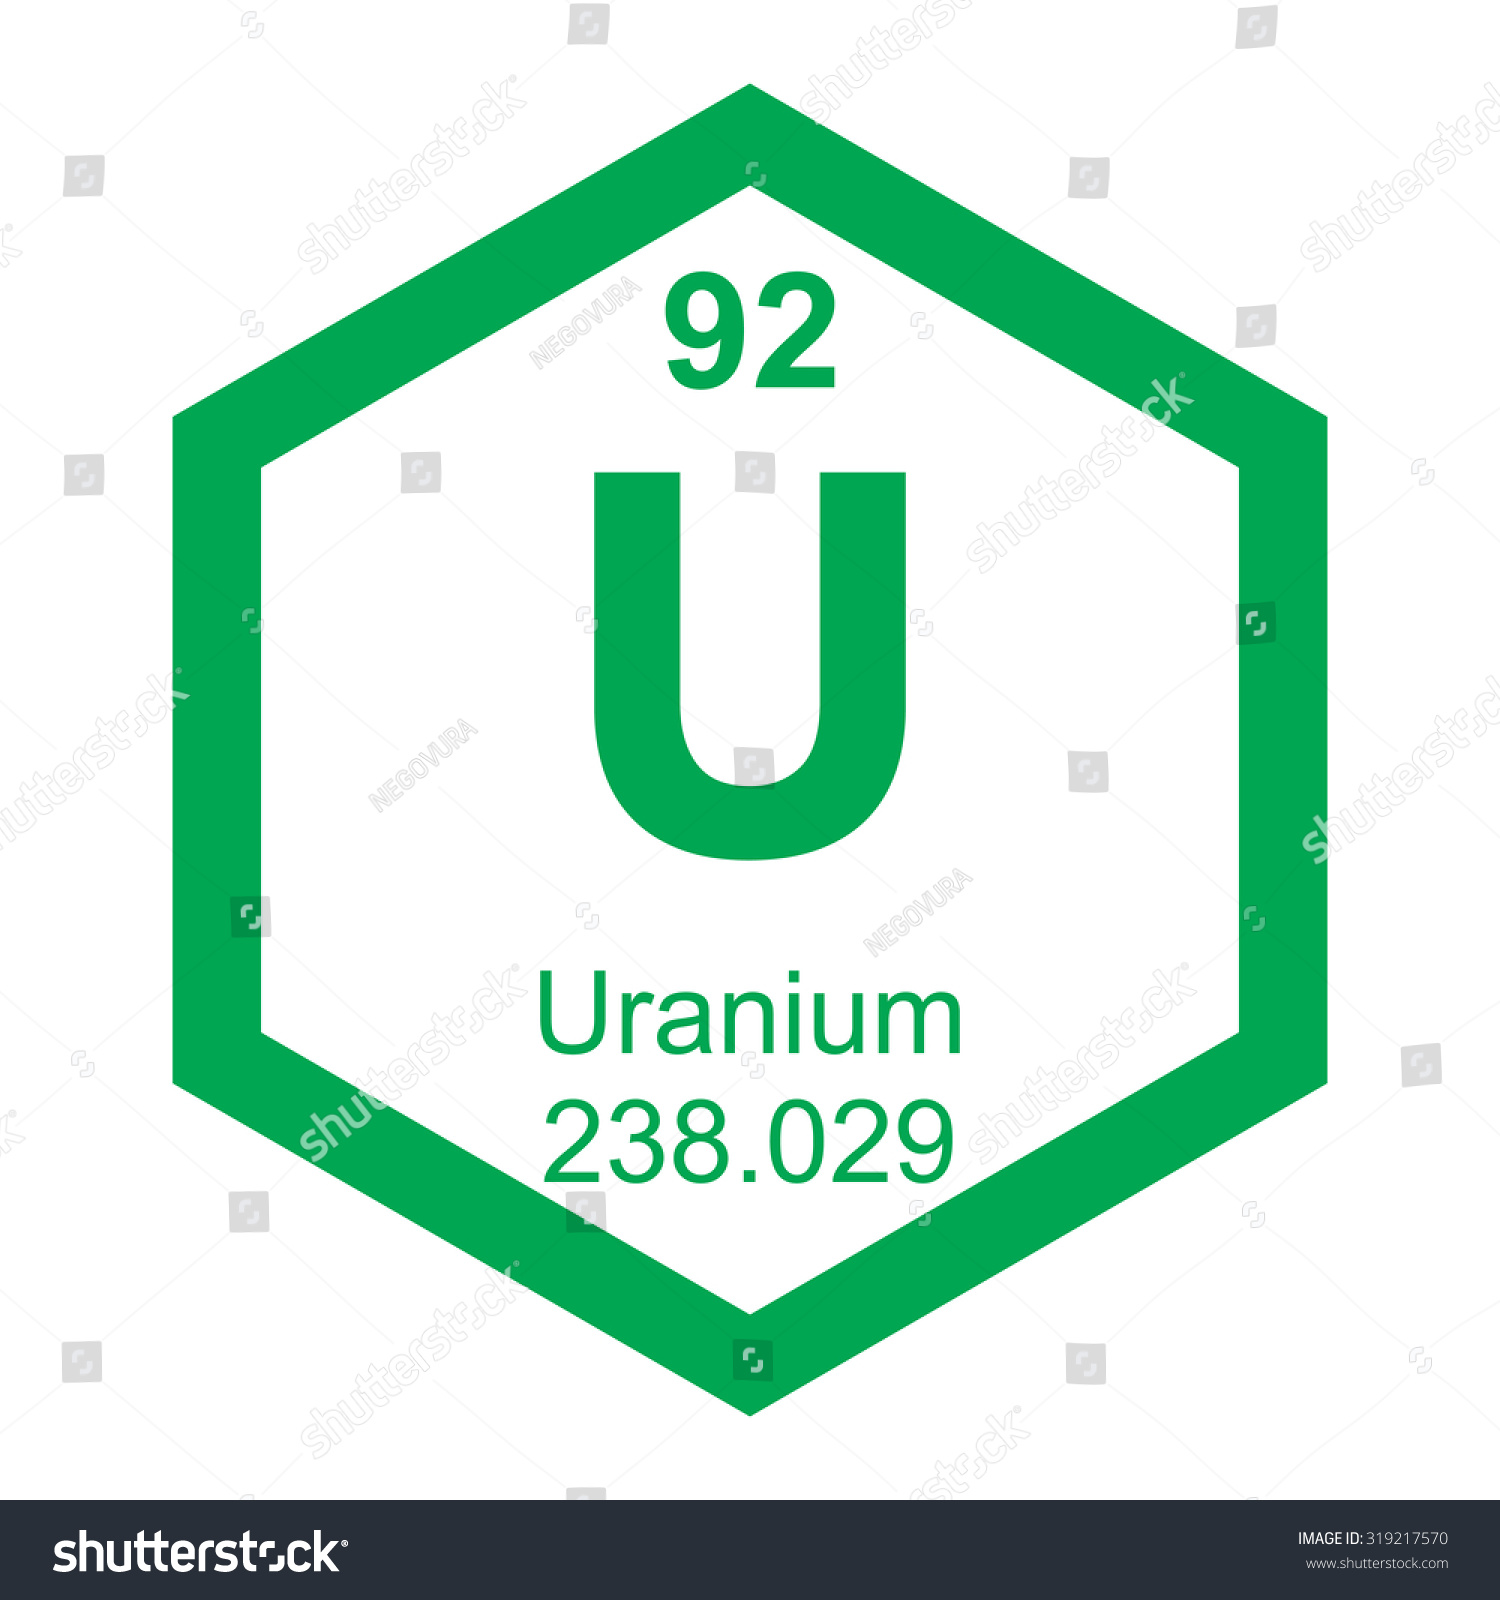 Element 53 periodic table choice image periodic table images uranium element periodic table image collections periodic table uranium element periodic table images periodic table images gamestrikefo Image collections